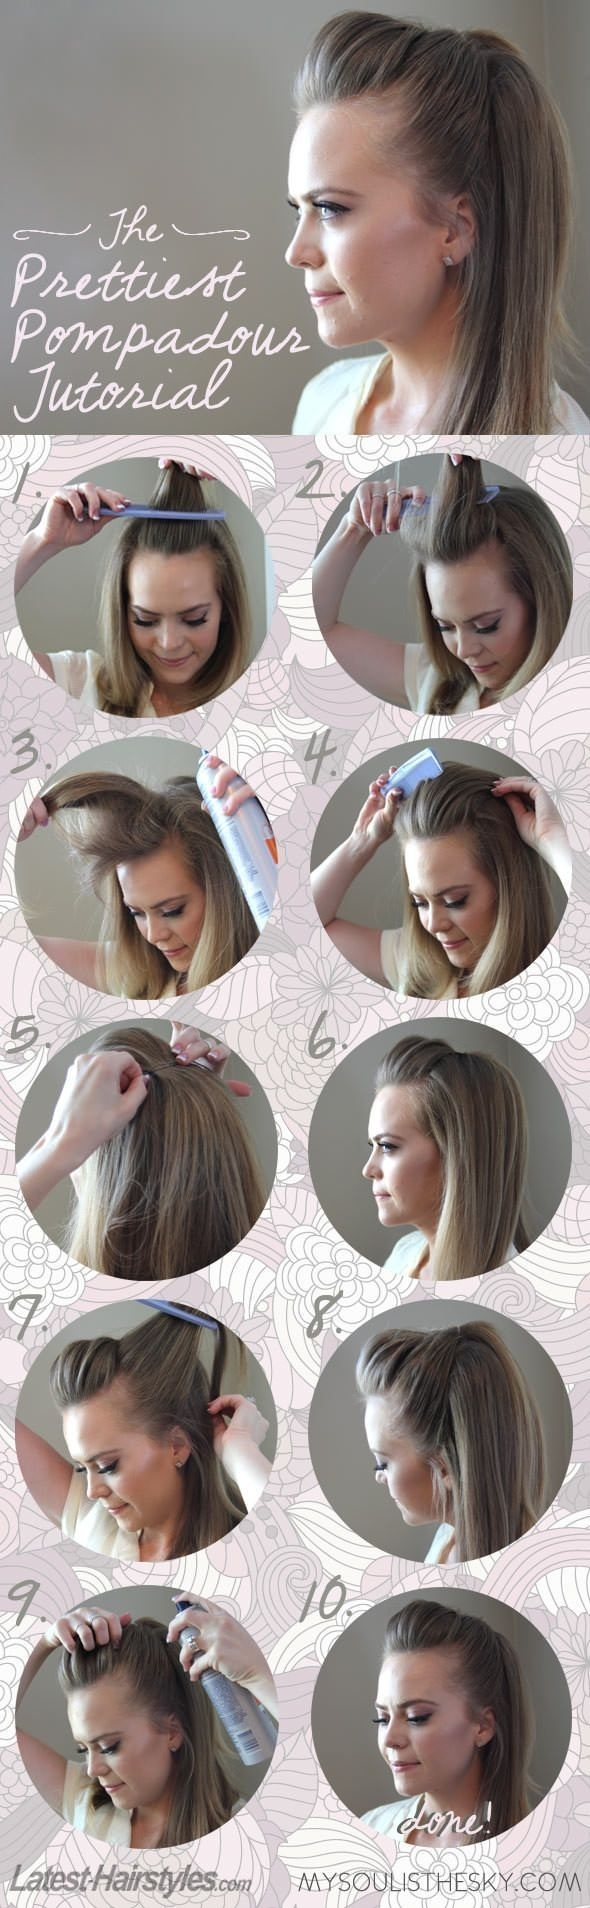 Peachy 23 Five Minute Hairstyles For Busy Mornings Short Hairstyles Gunalazisus